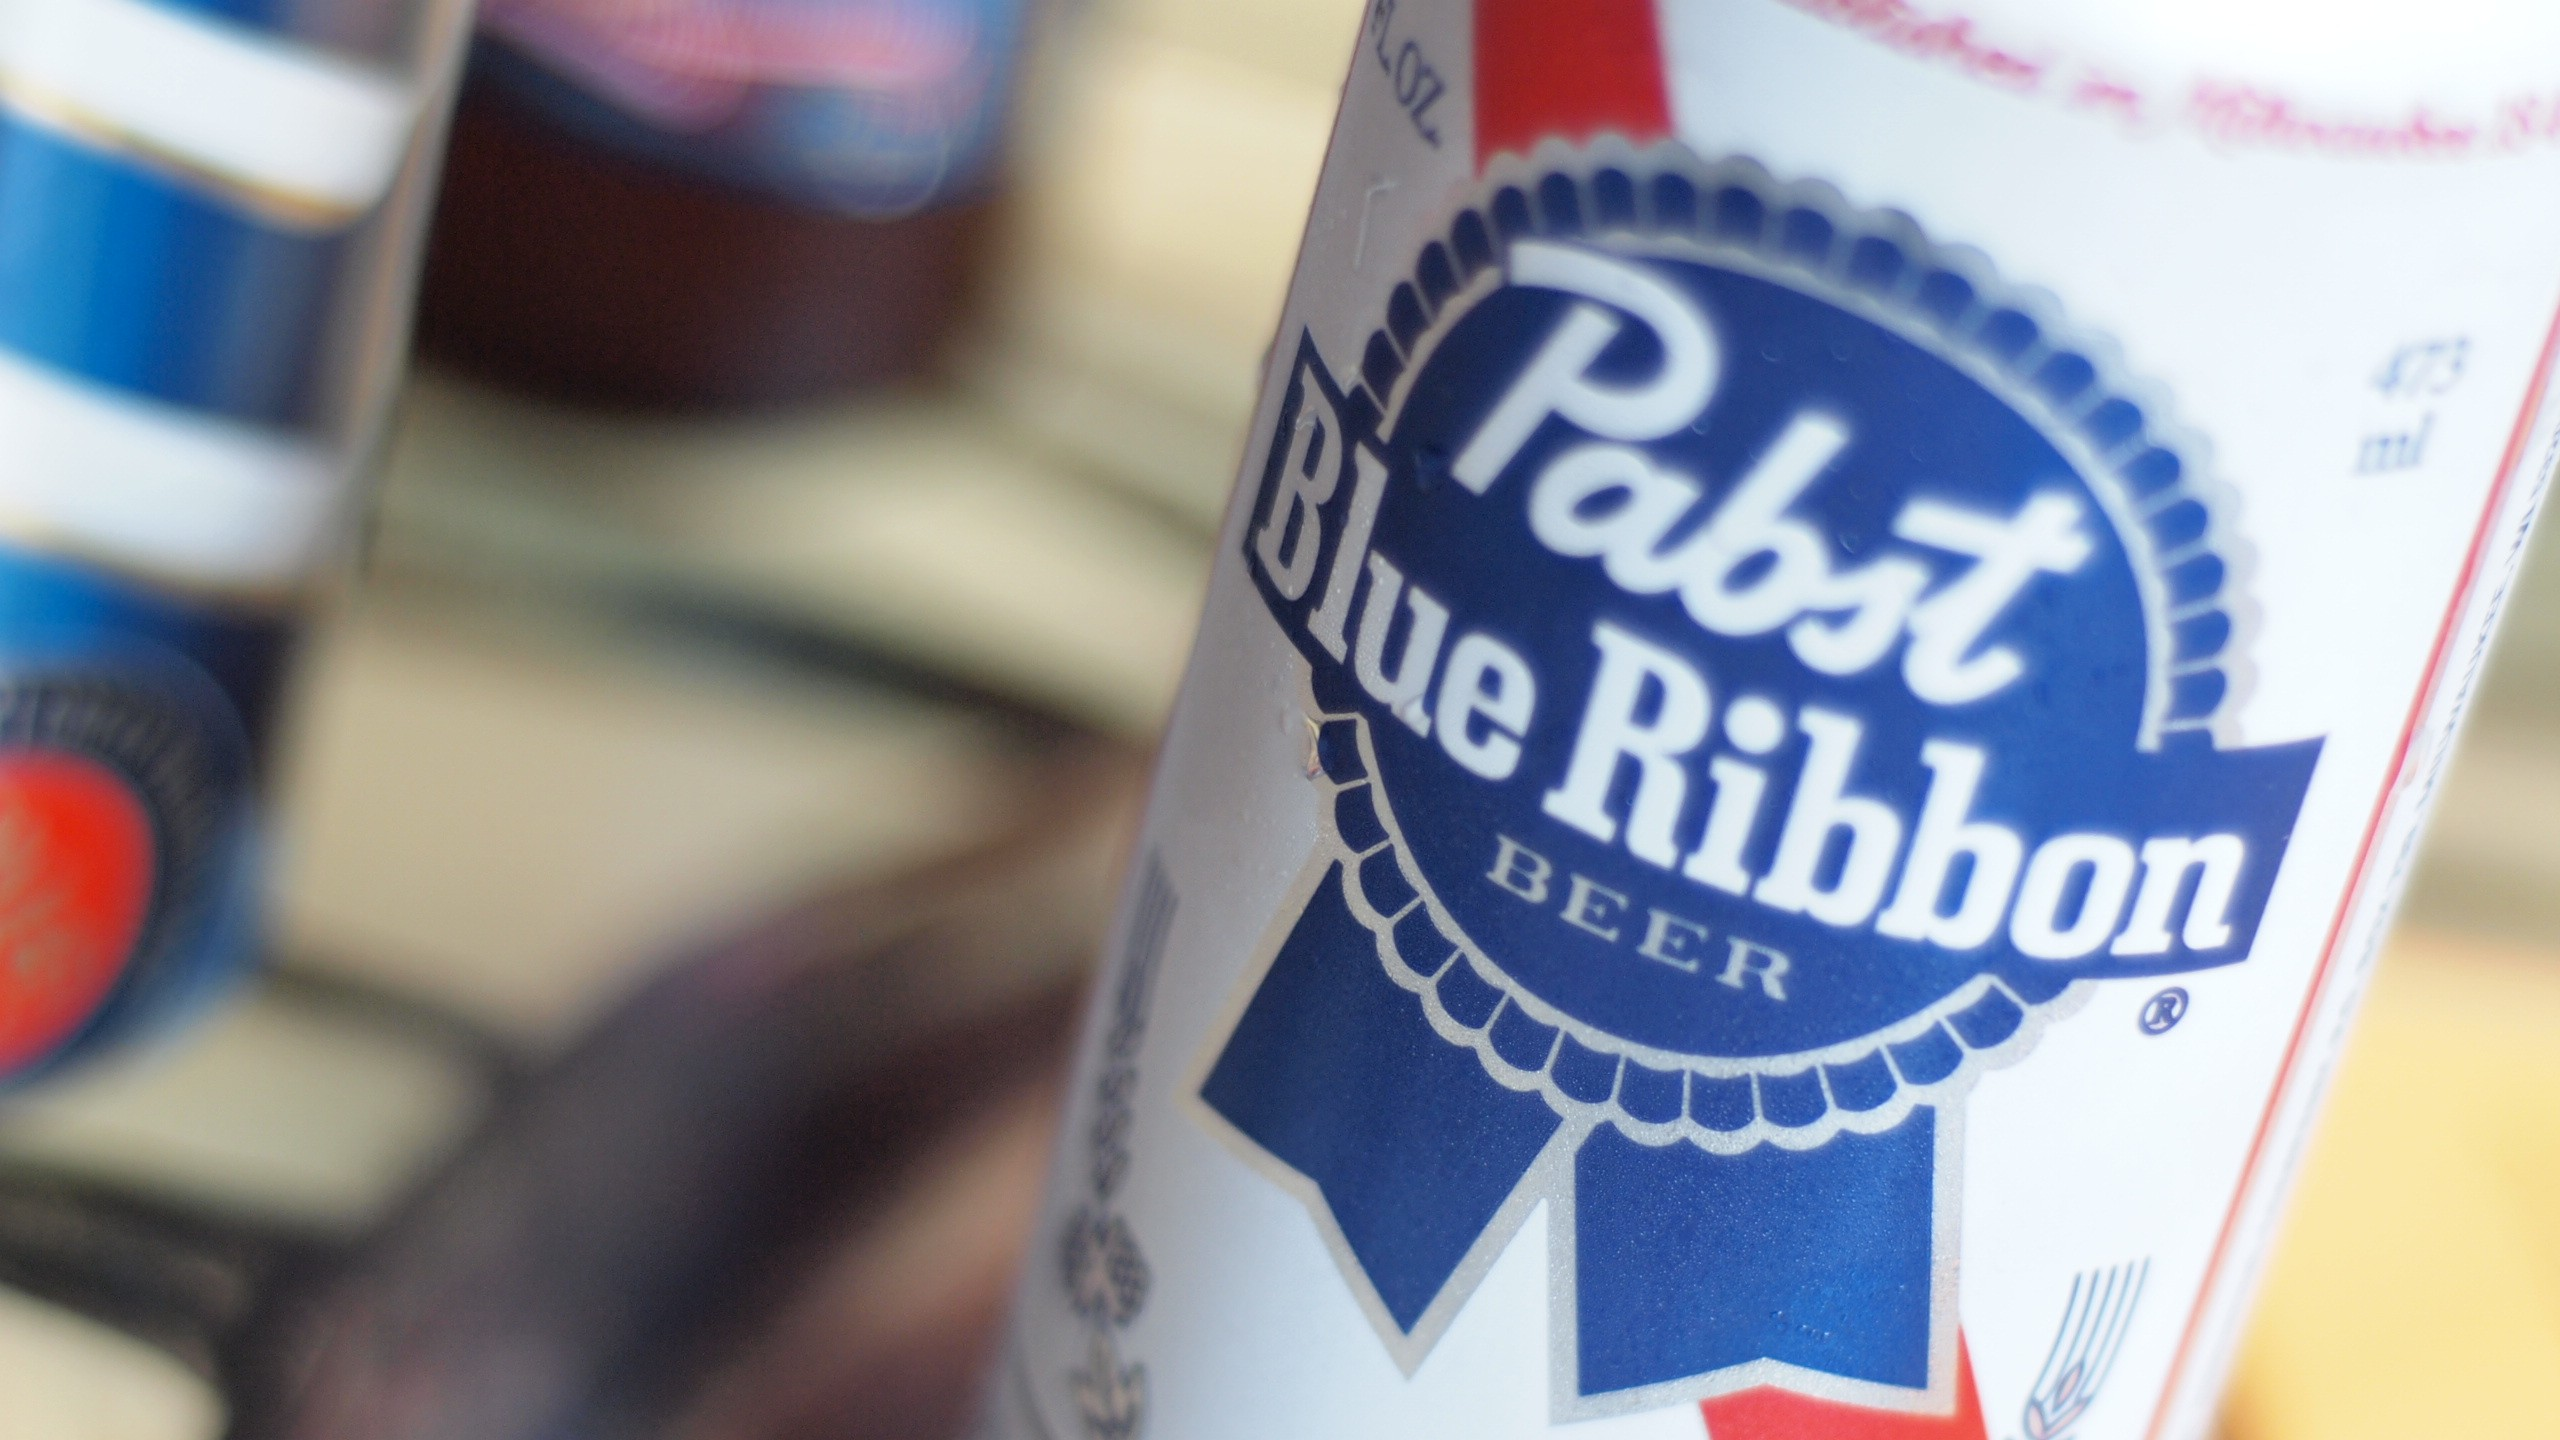 Pabst Blue Ribbon logos HD Wallpaper